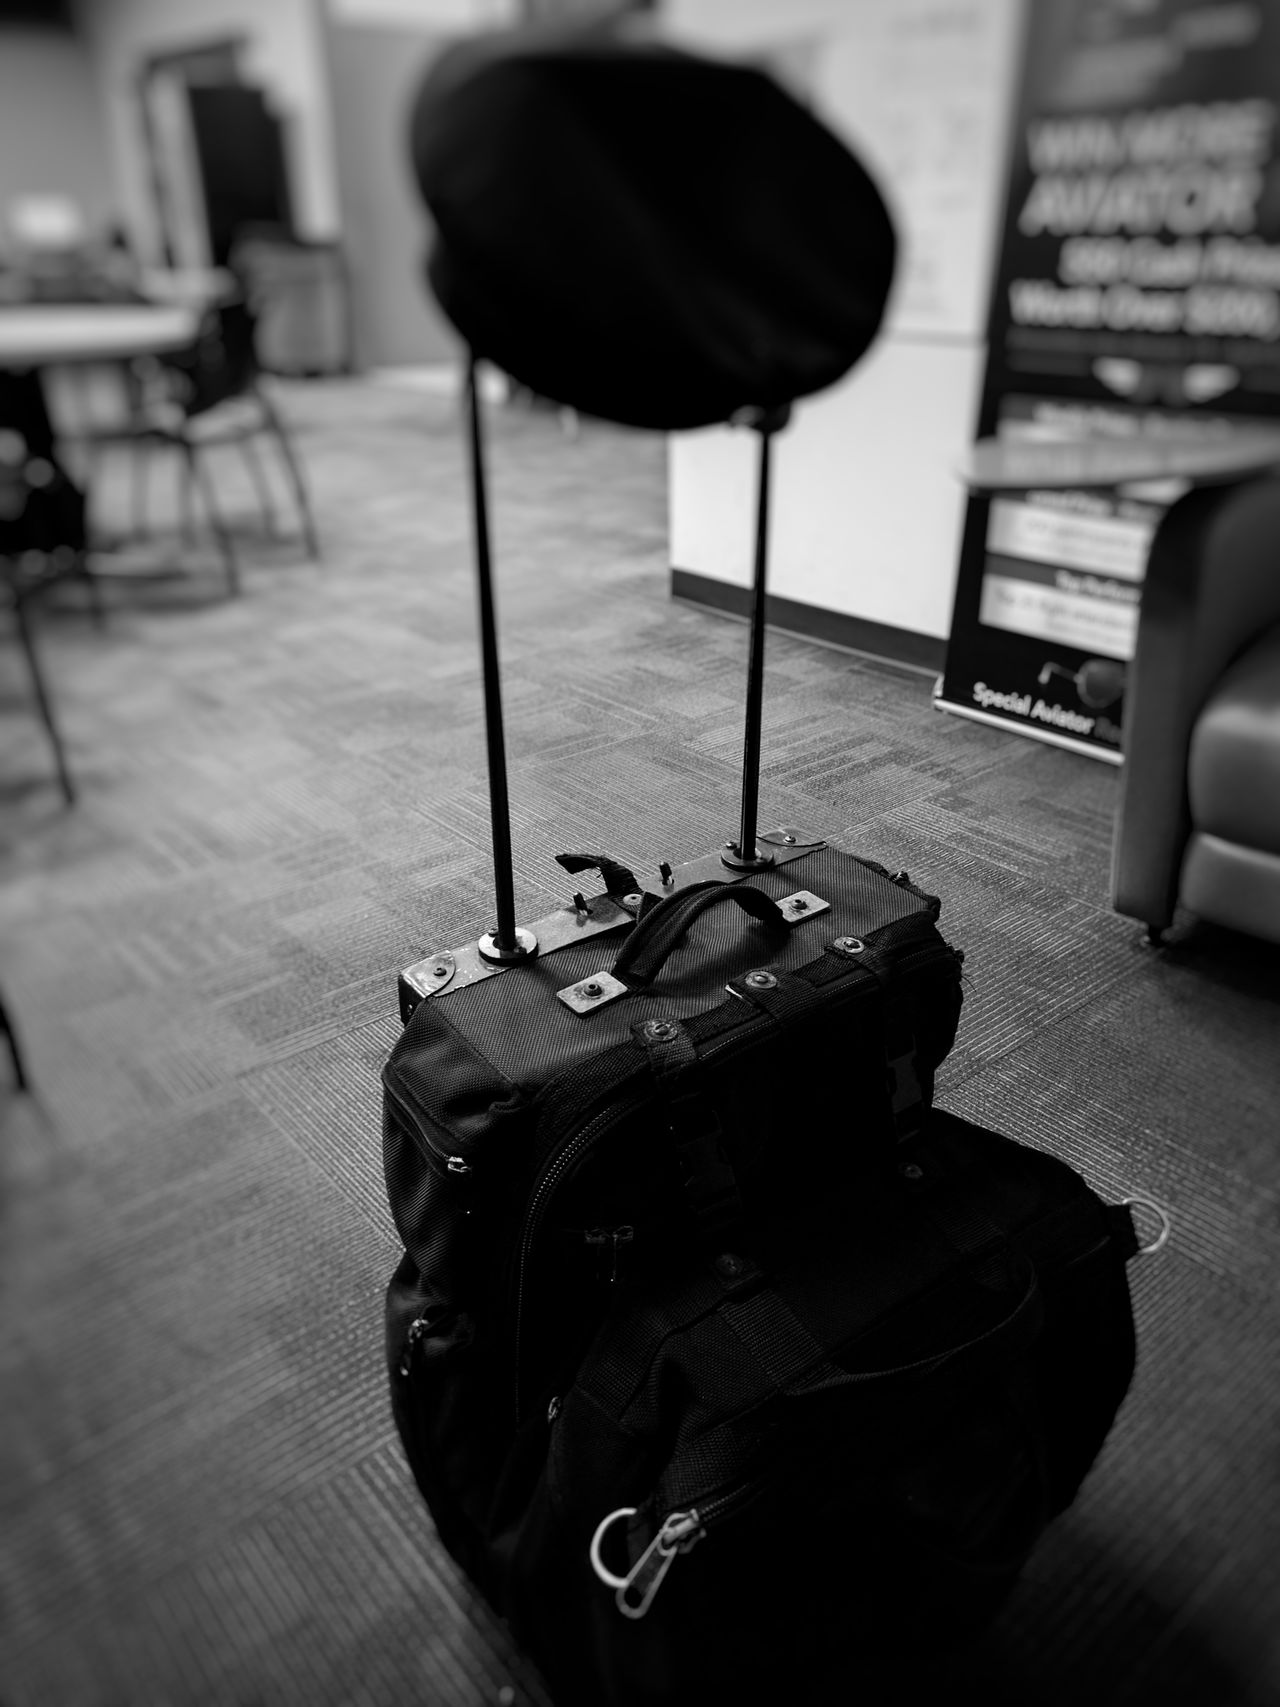 Table Indoors  No People Appliance Day EyeEm Enjoying Life Taking Photos Tranquil Scene Full Frame Selective Focus Travel Pilot Flying Travel Photography Traveling Suitcase Hat Public Transportation Black & White Black And White Photography Indoors  Airlinepilot Airport Airport Waiting